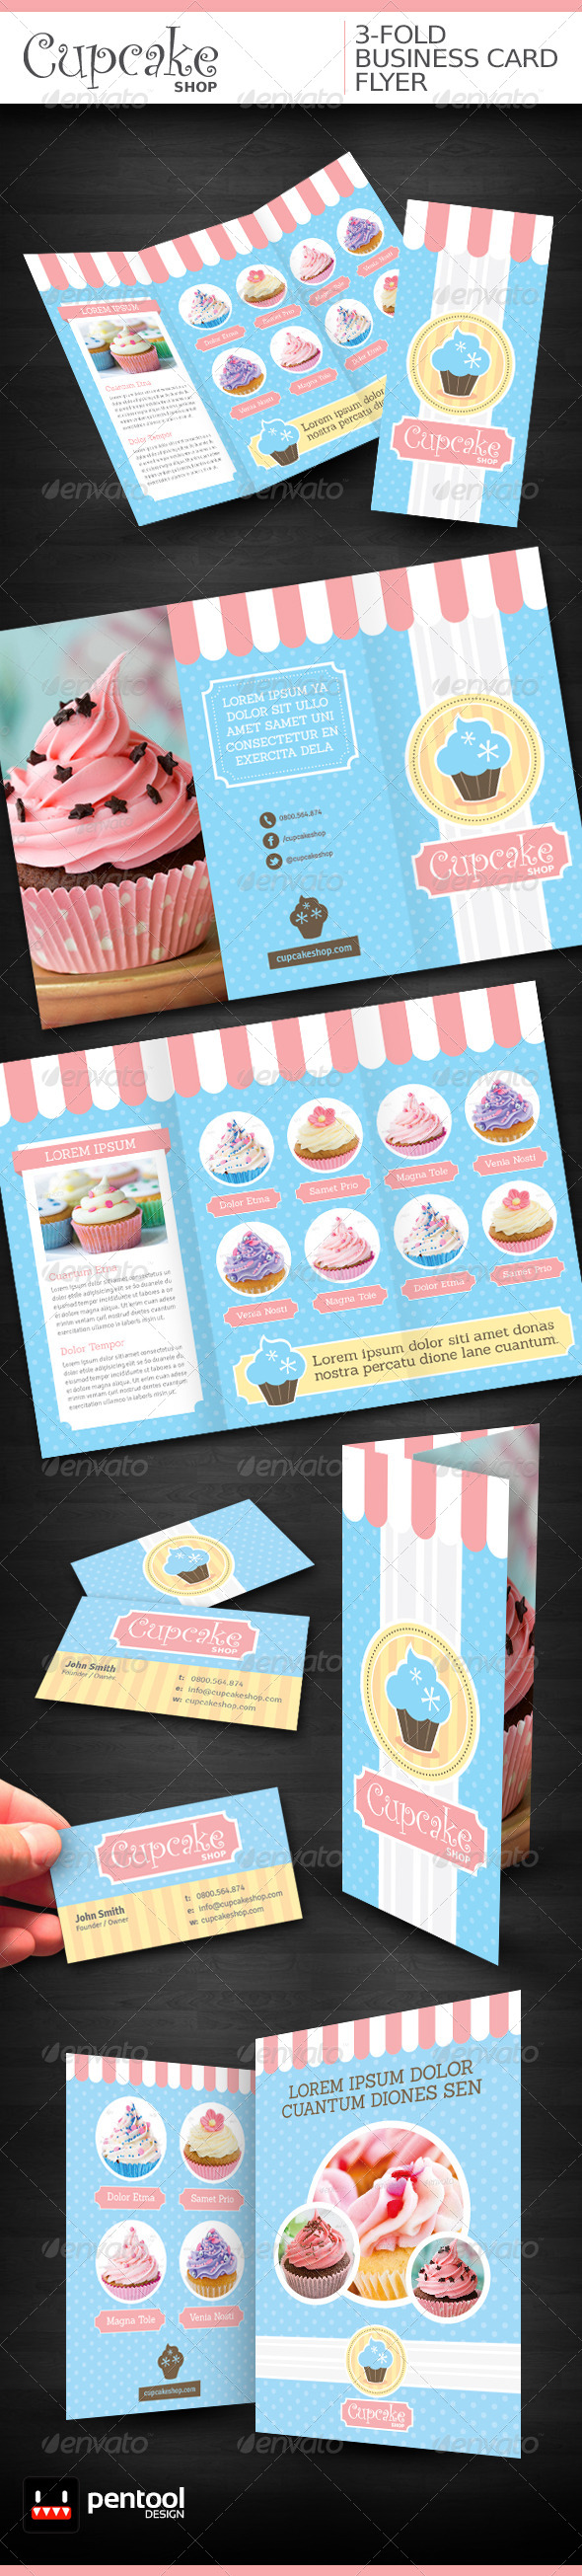 Cupcake Shop 3-Fold/Business Card/Flyer - Stationery Print Templates